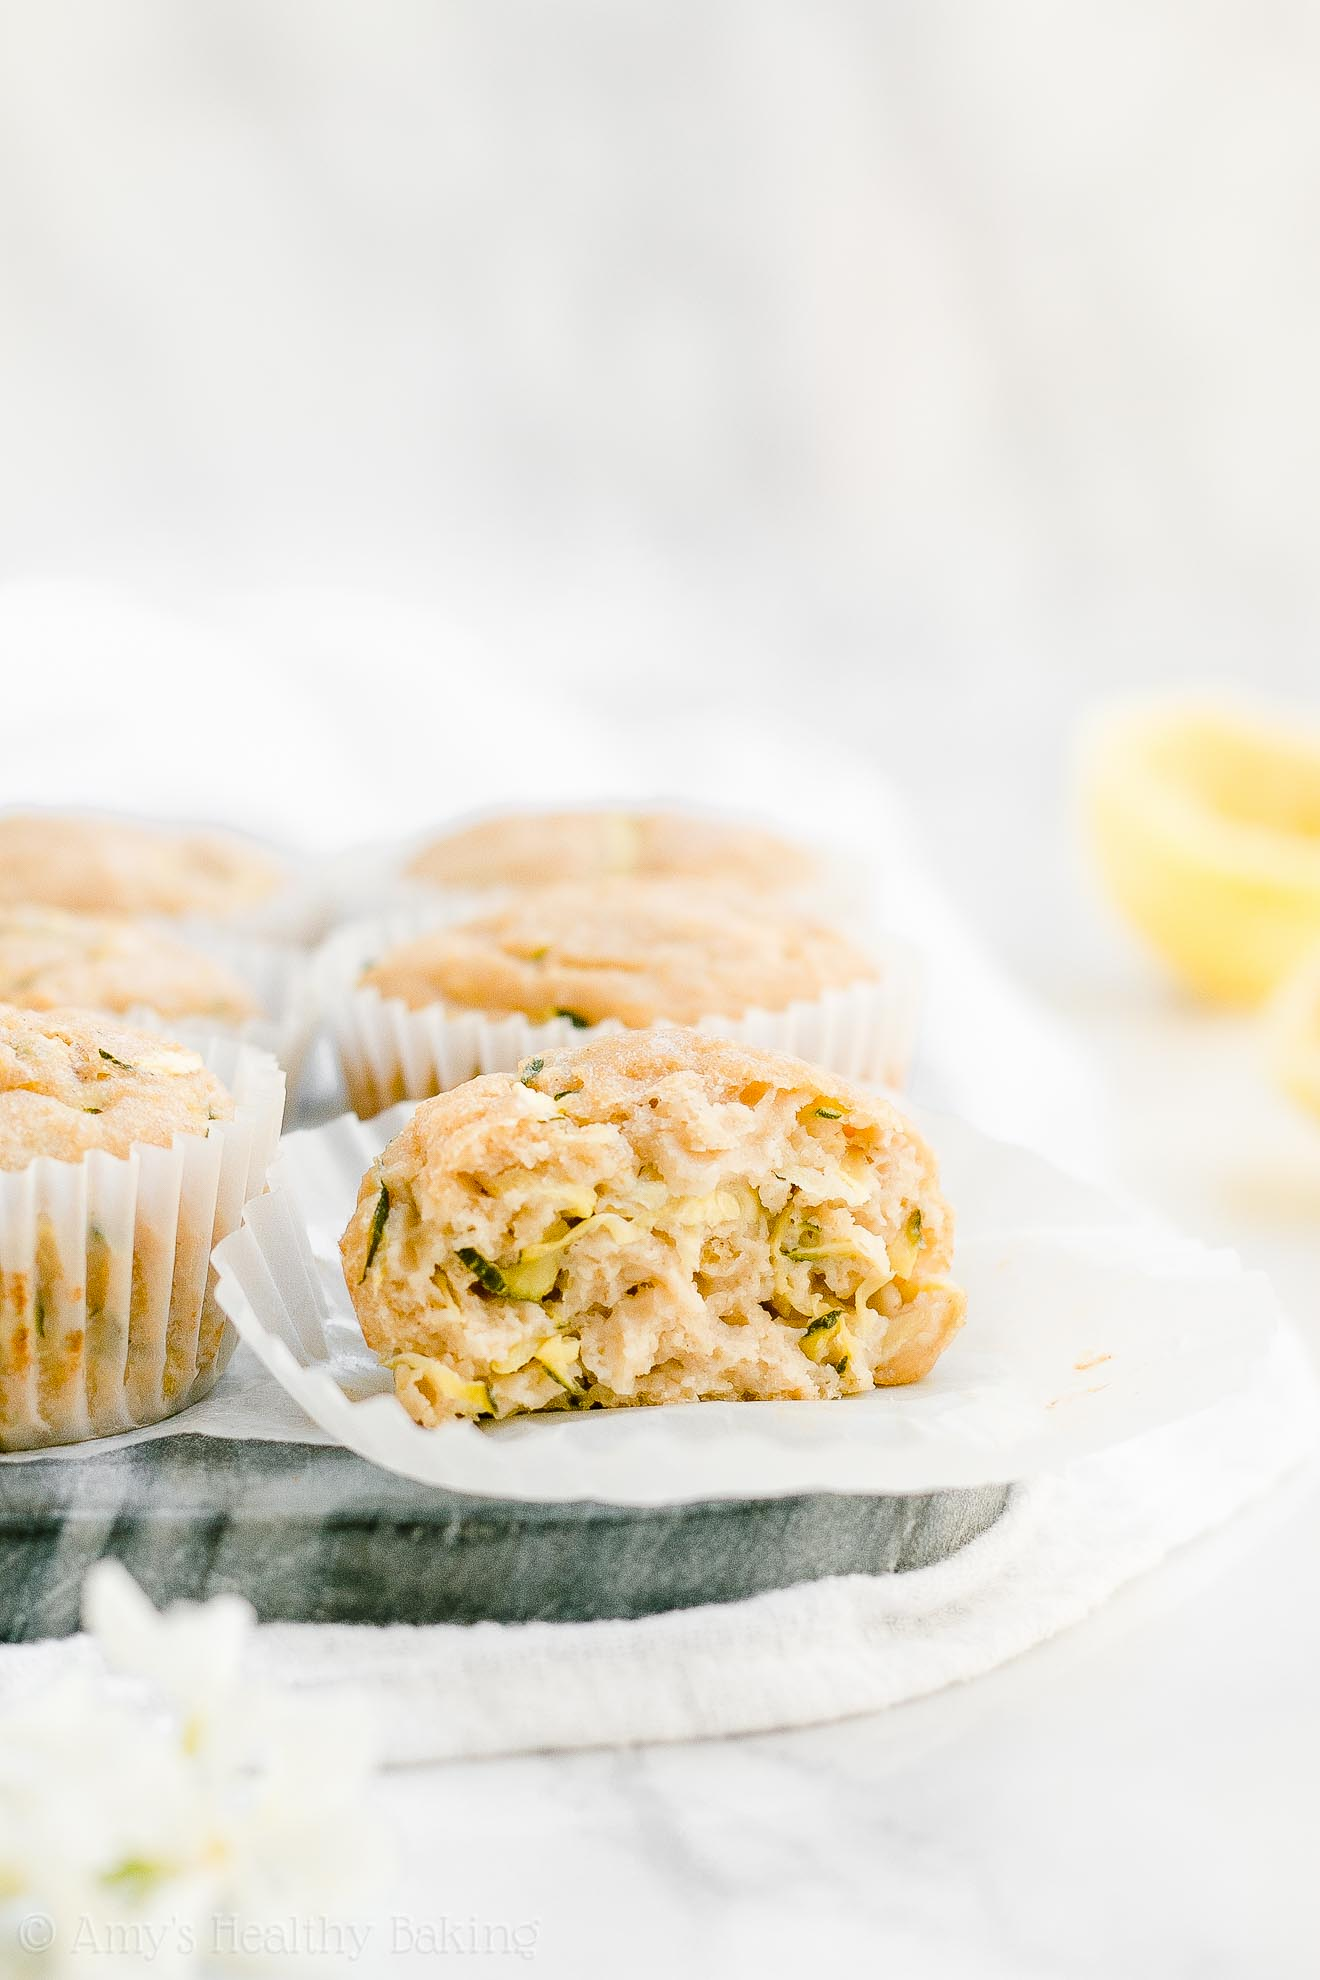 Best Healthy Low Calorie Lemon Zucchini Muffins